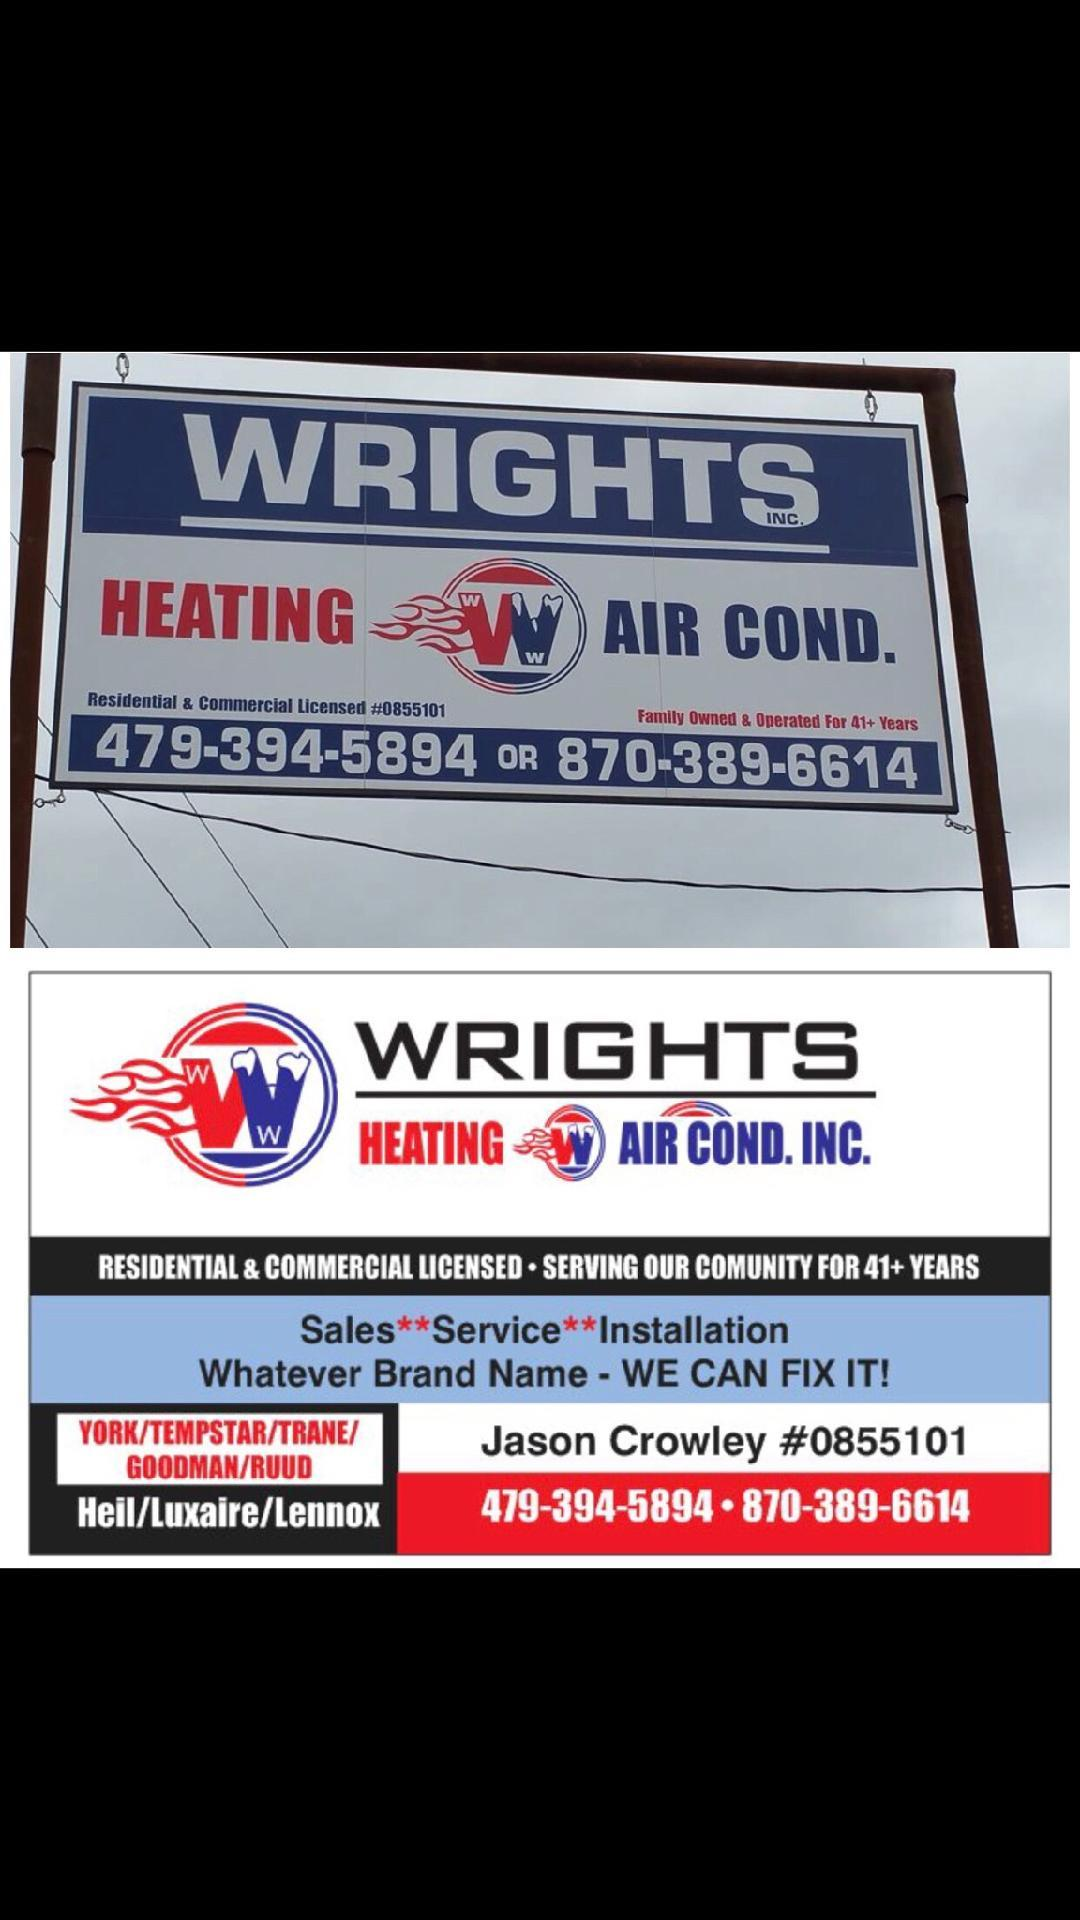 Wrights Heating And Air Conditioning Mena, AR Plumbing